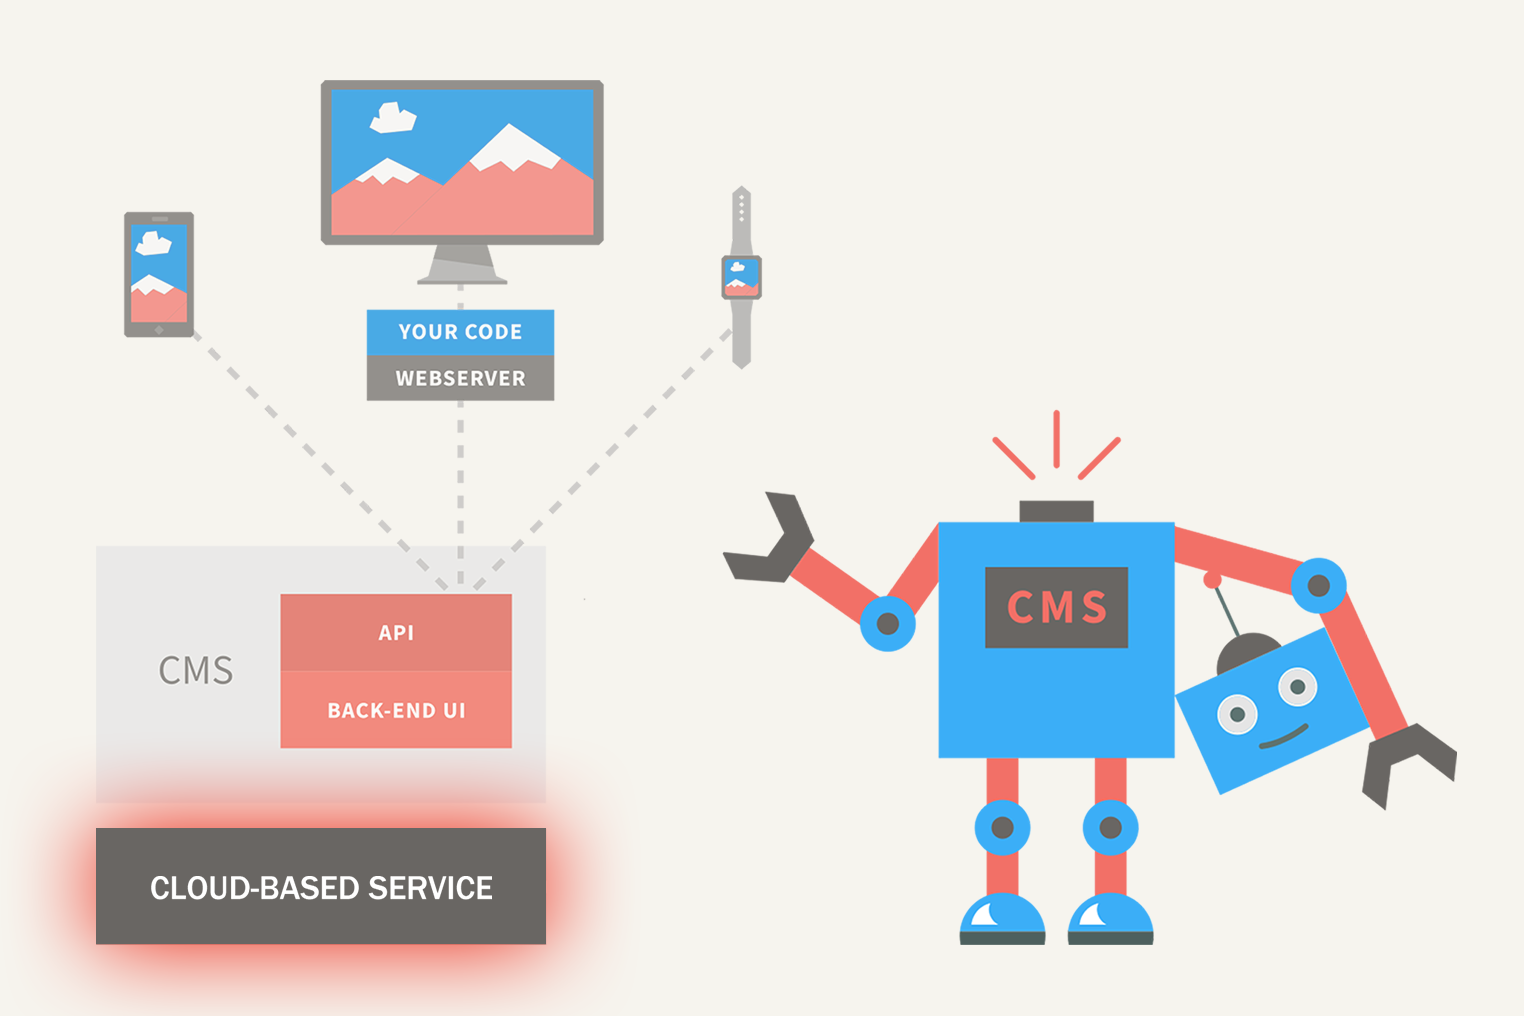 Content as a Service (CaaS)